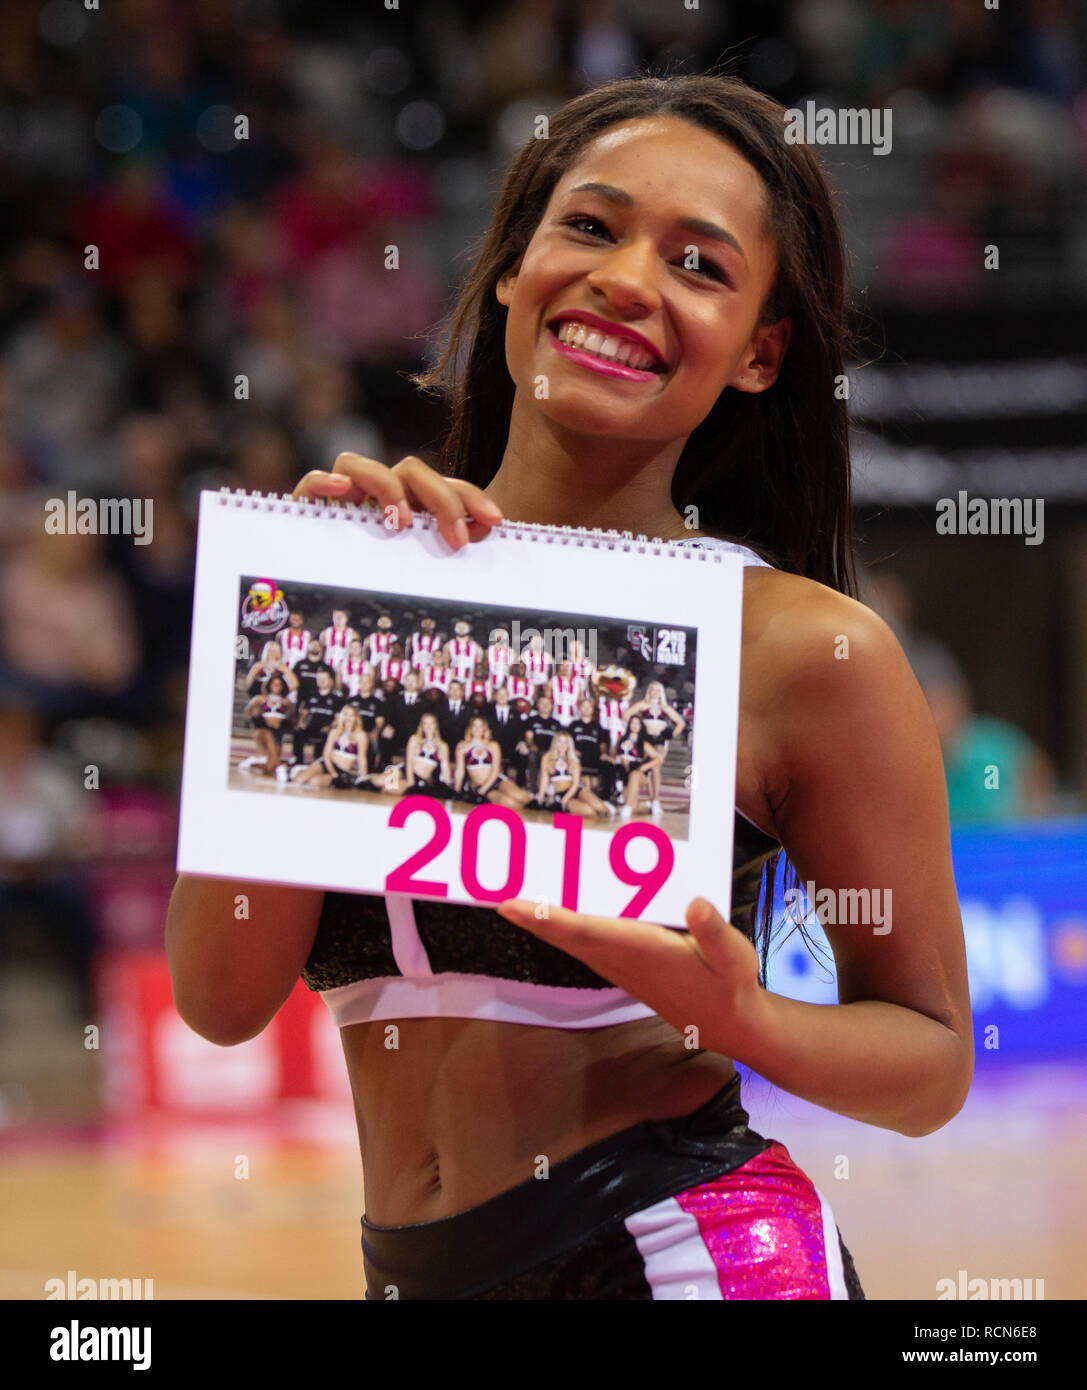 Bonn, Germany, 15th January 2019, Basketball, Champions League, Telekom Baskets Bonn vs Fribourg Olympic Basket: Cheerleader des Telekom Baskets Dance Team. Credit: Juergen Schwarz/Alamy Live News - Stock Image